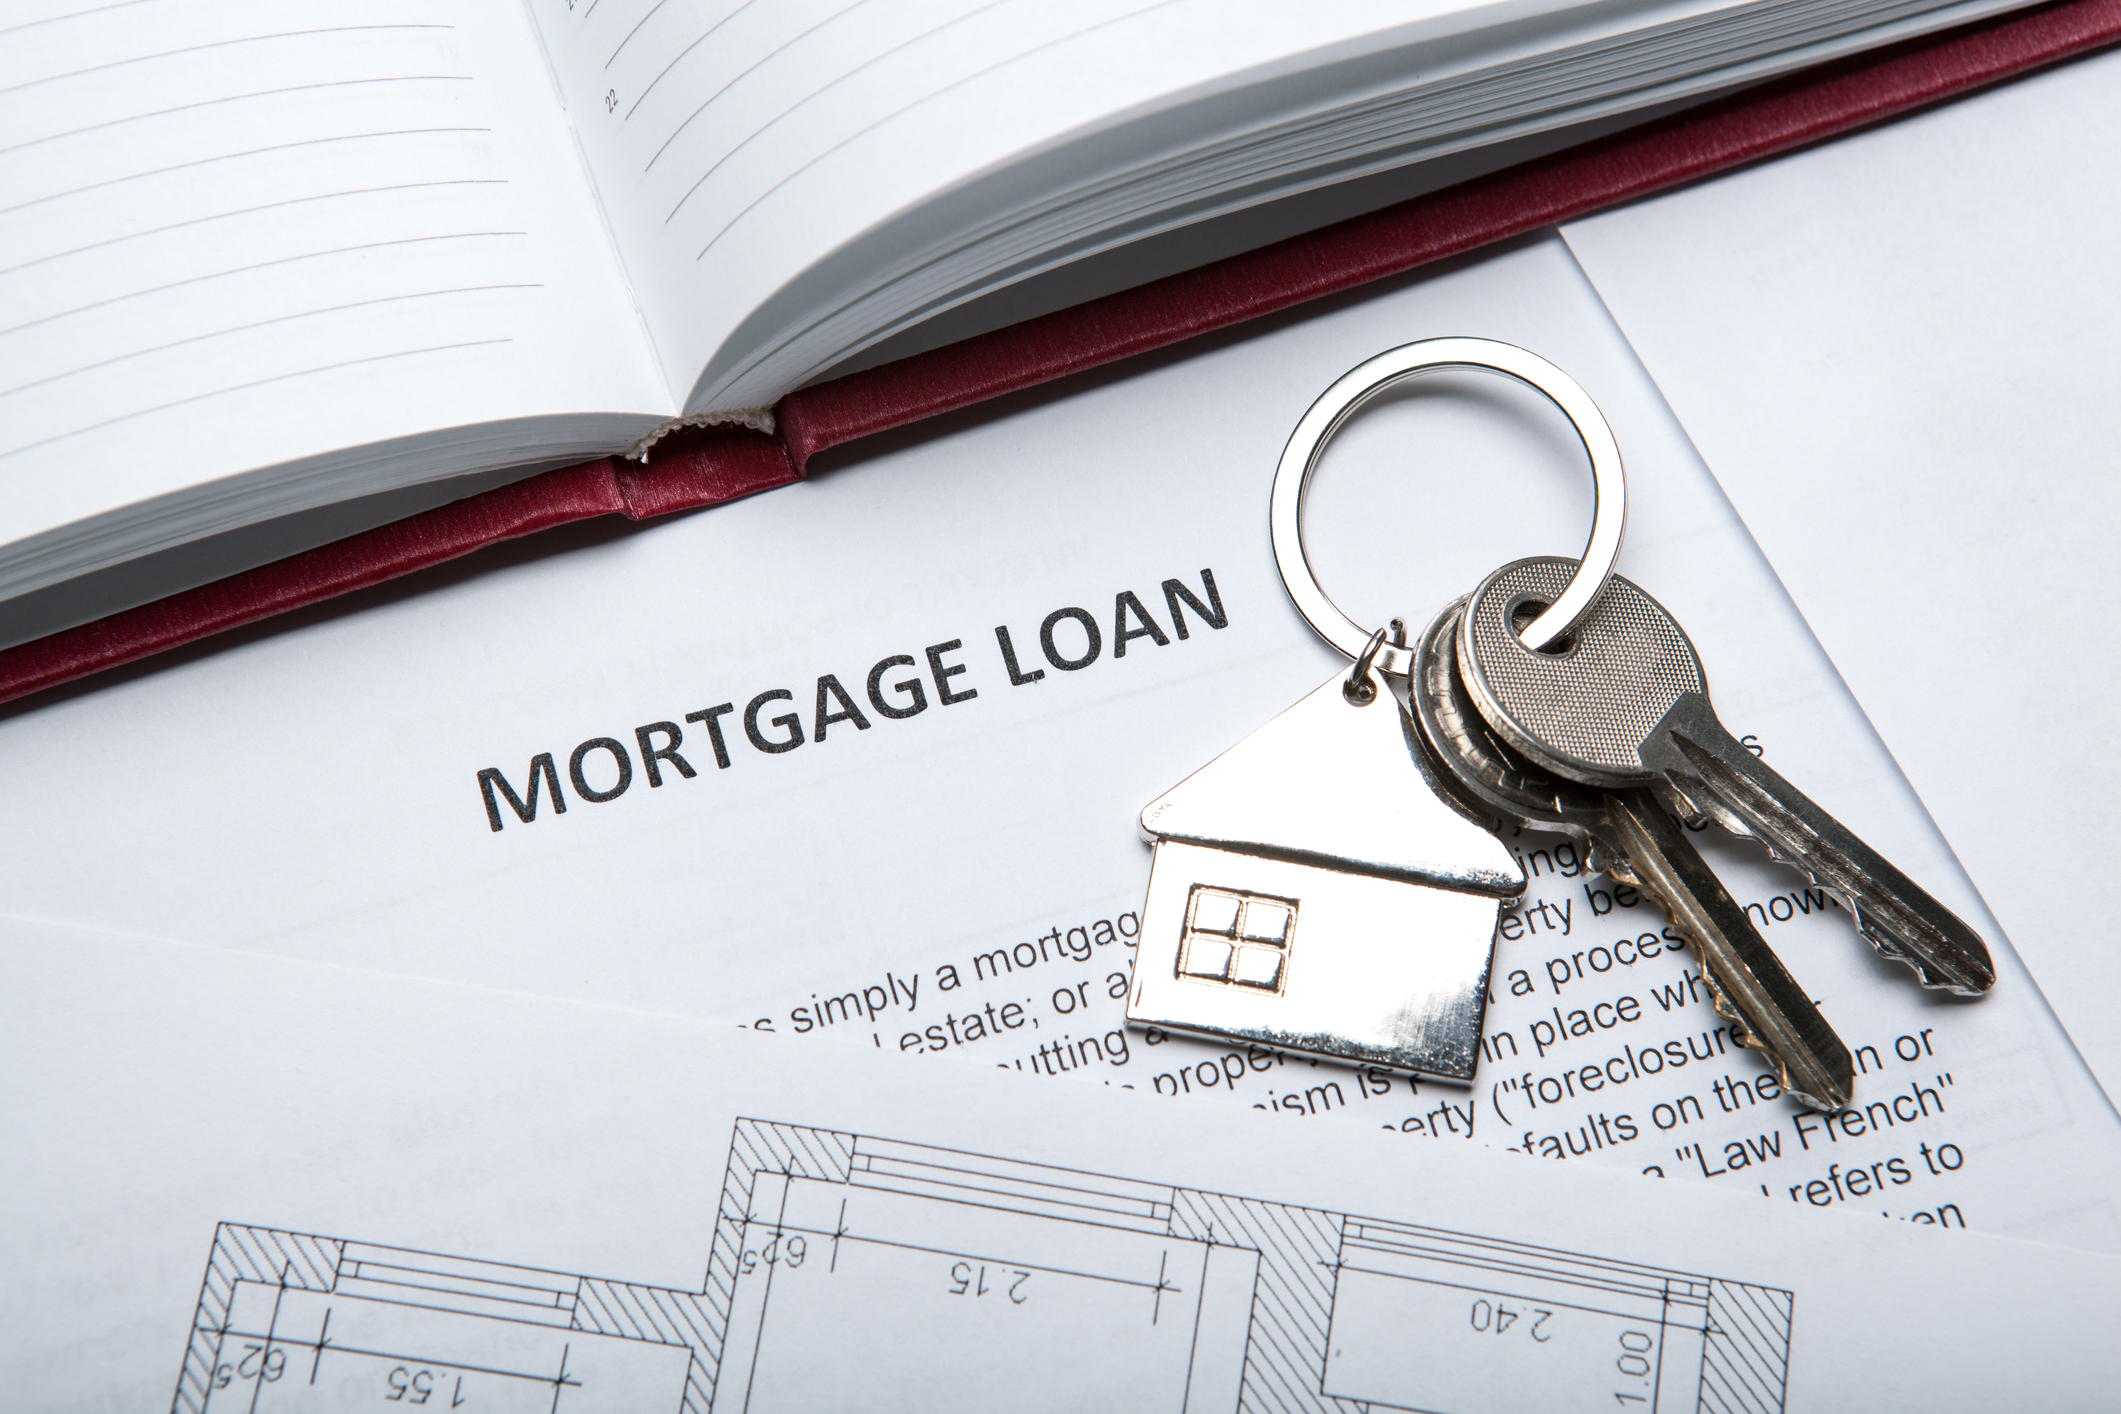 Modify Your Mortgage While Avoiding Fraud